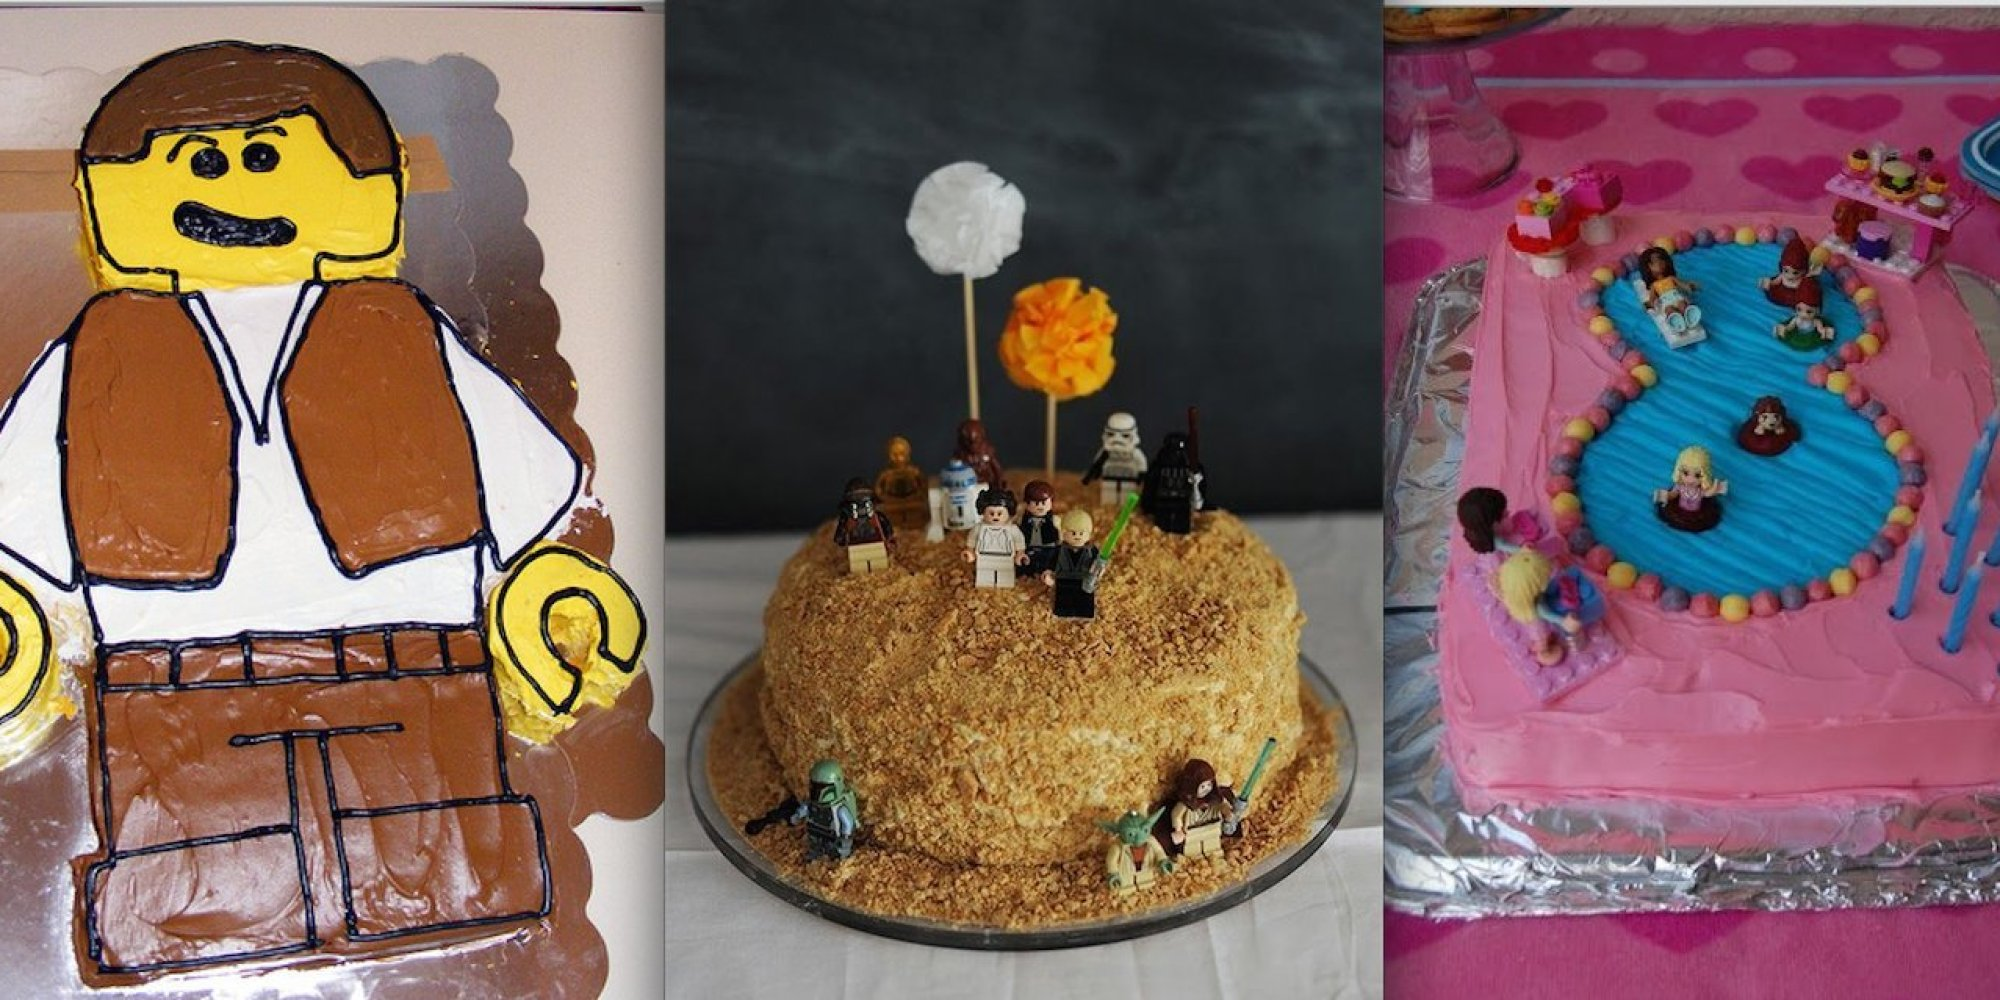 Lego Cake Ideas So Easy Even We Can Make Them!